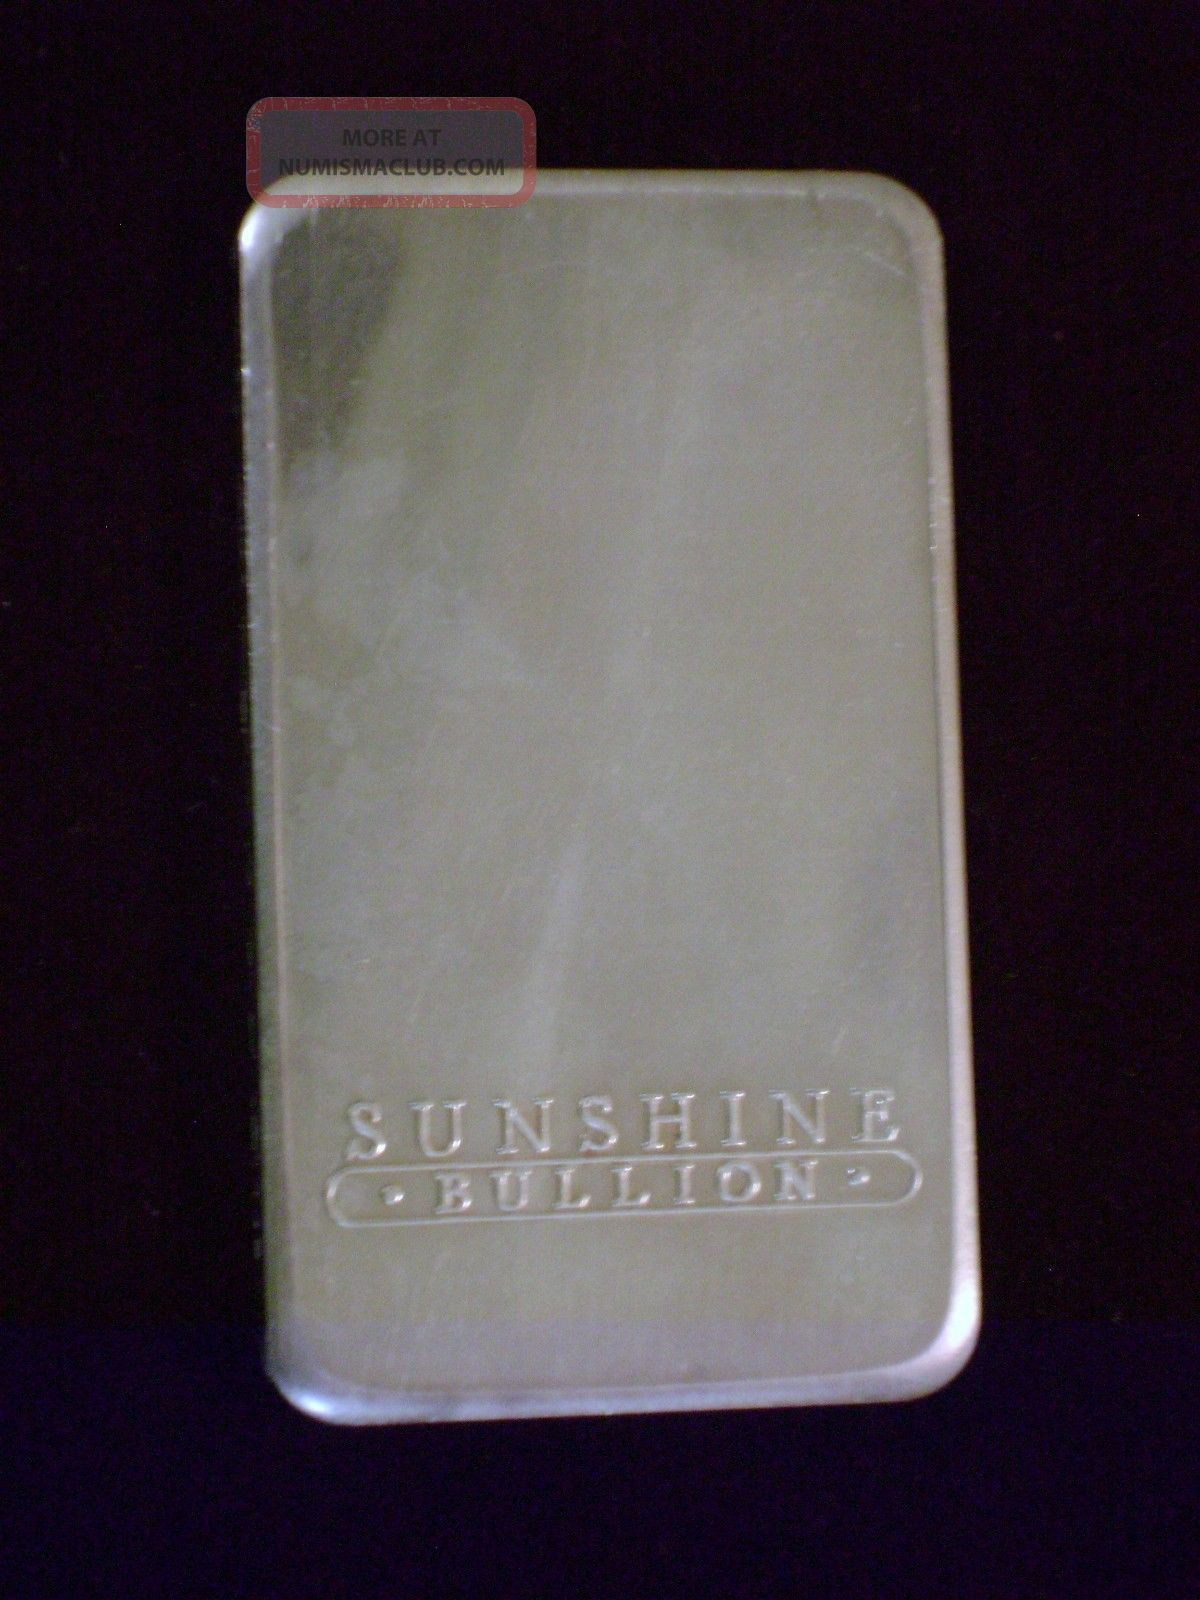 Sunshine Mining Eagle Bullion Silver Troy 10 Oz Numbered